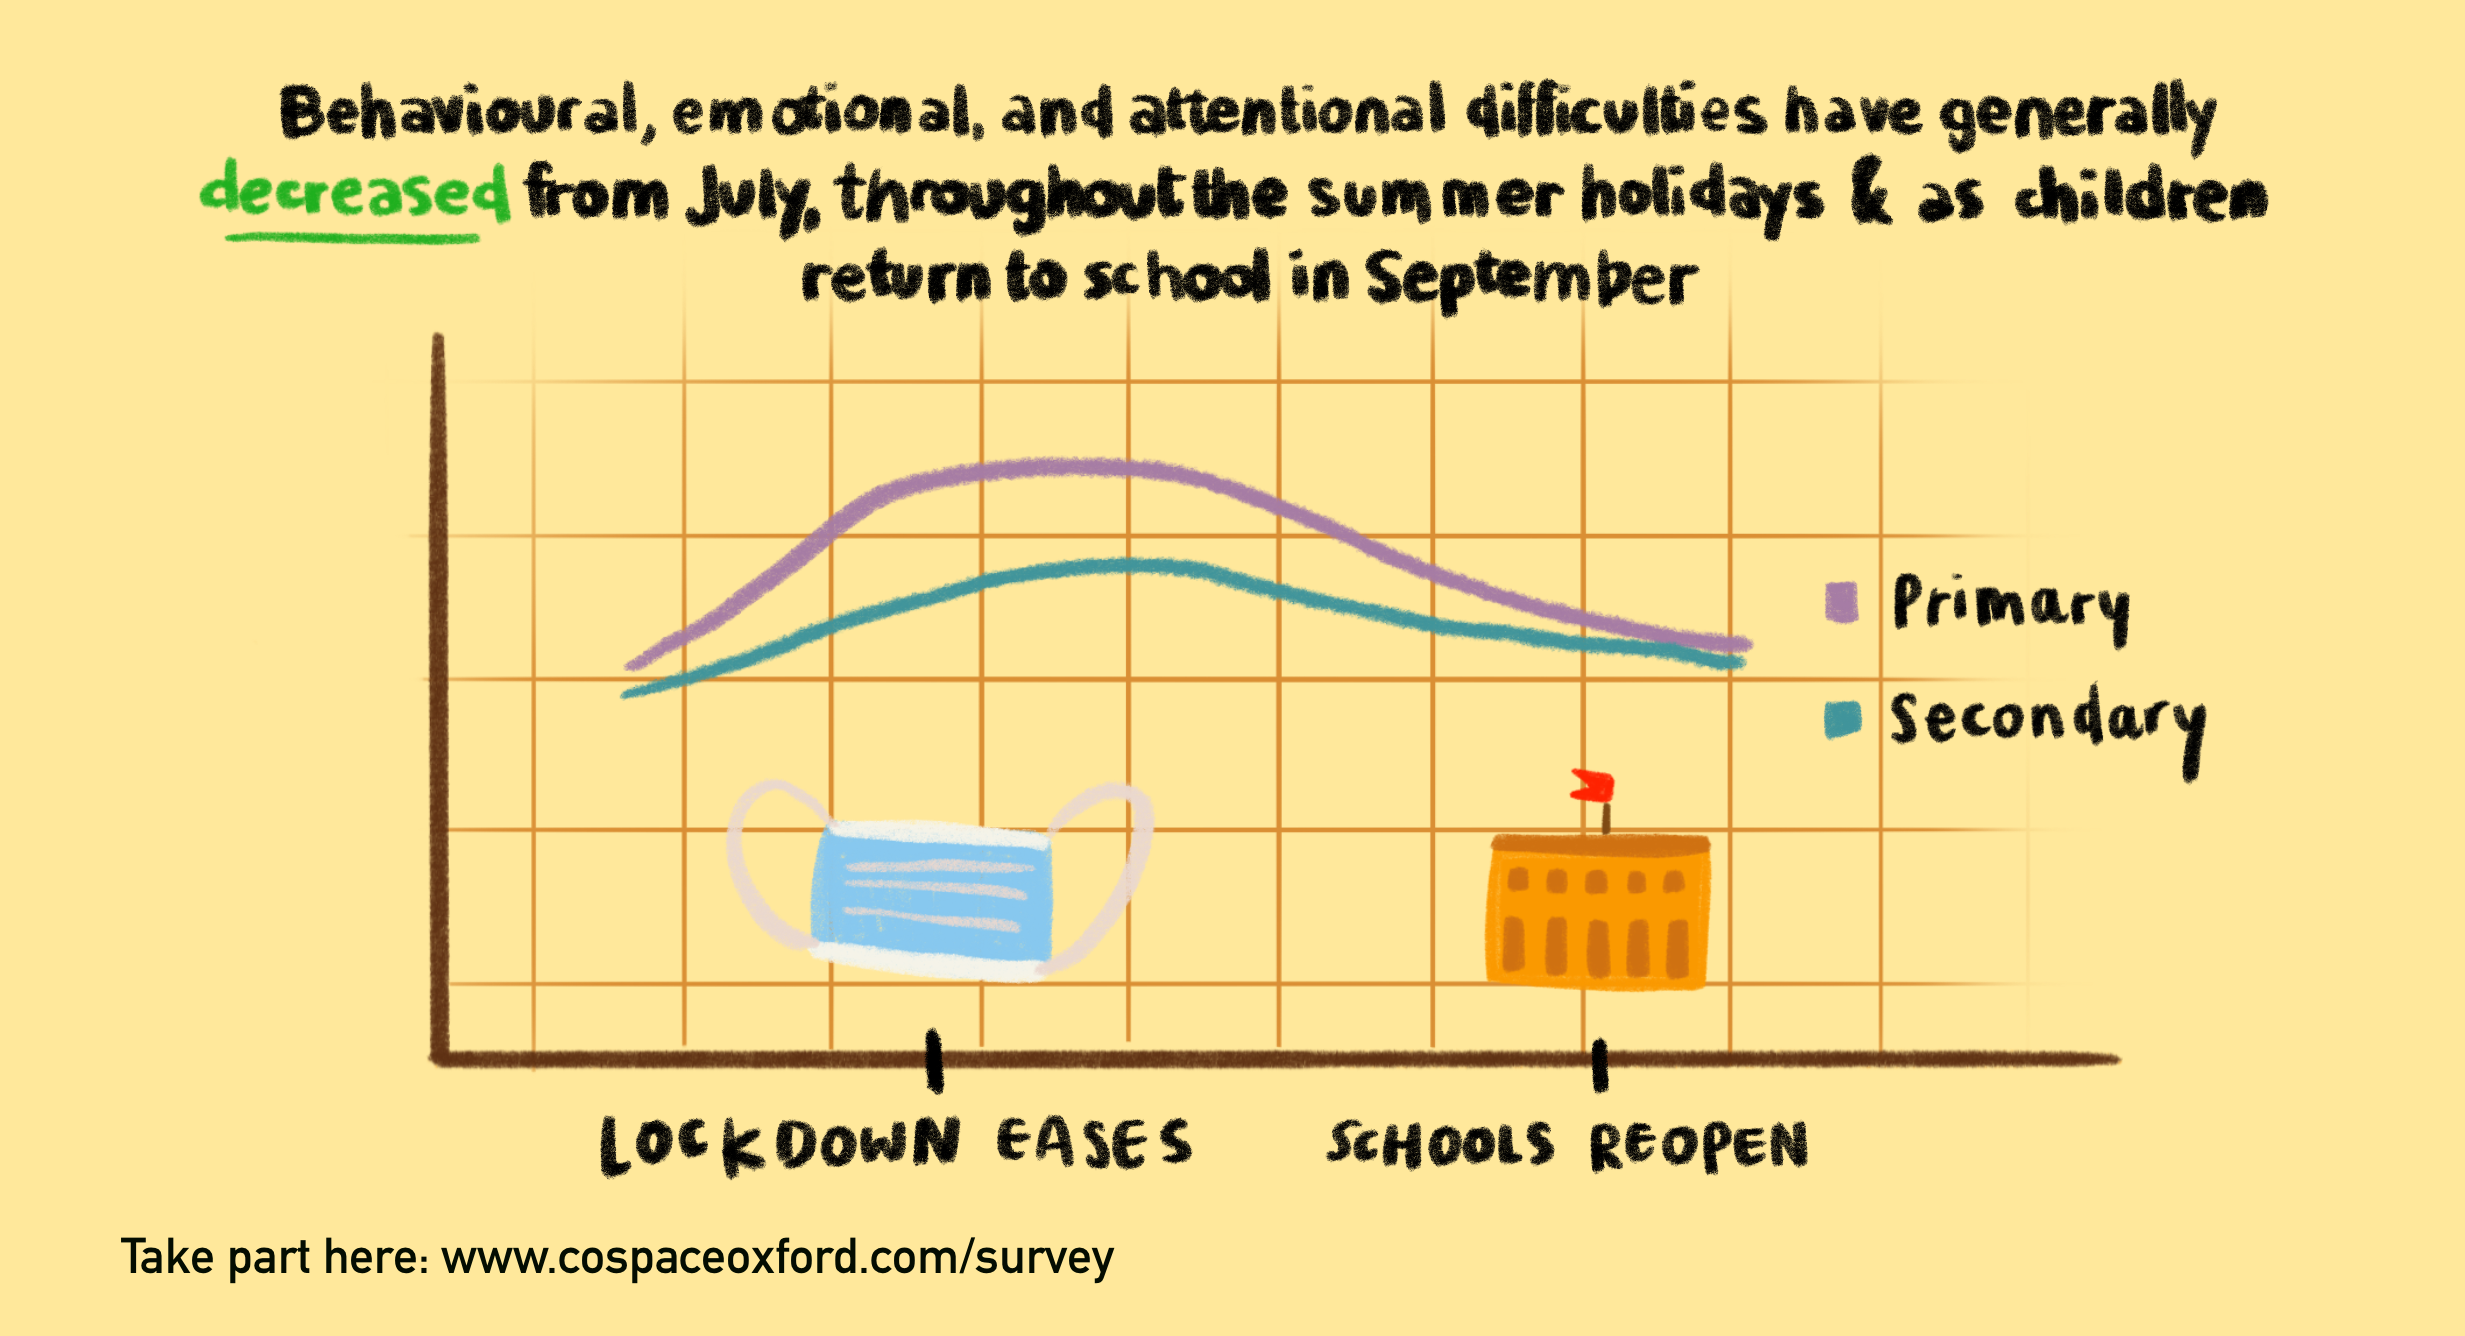 Behavioural and restless/attentional difficulties increased through the lockdown from March to June. This was especially the case in primary school aged children (4-10 years old).